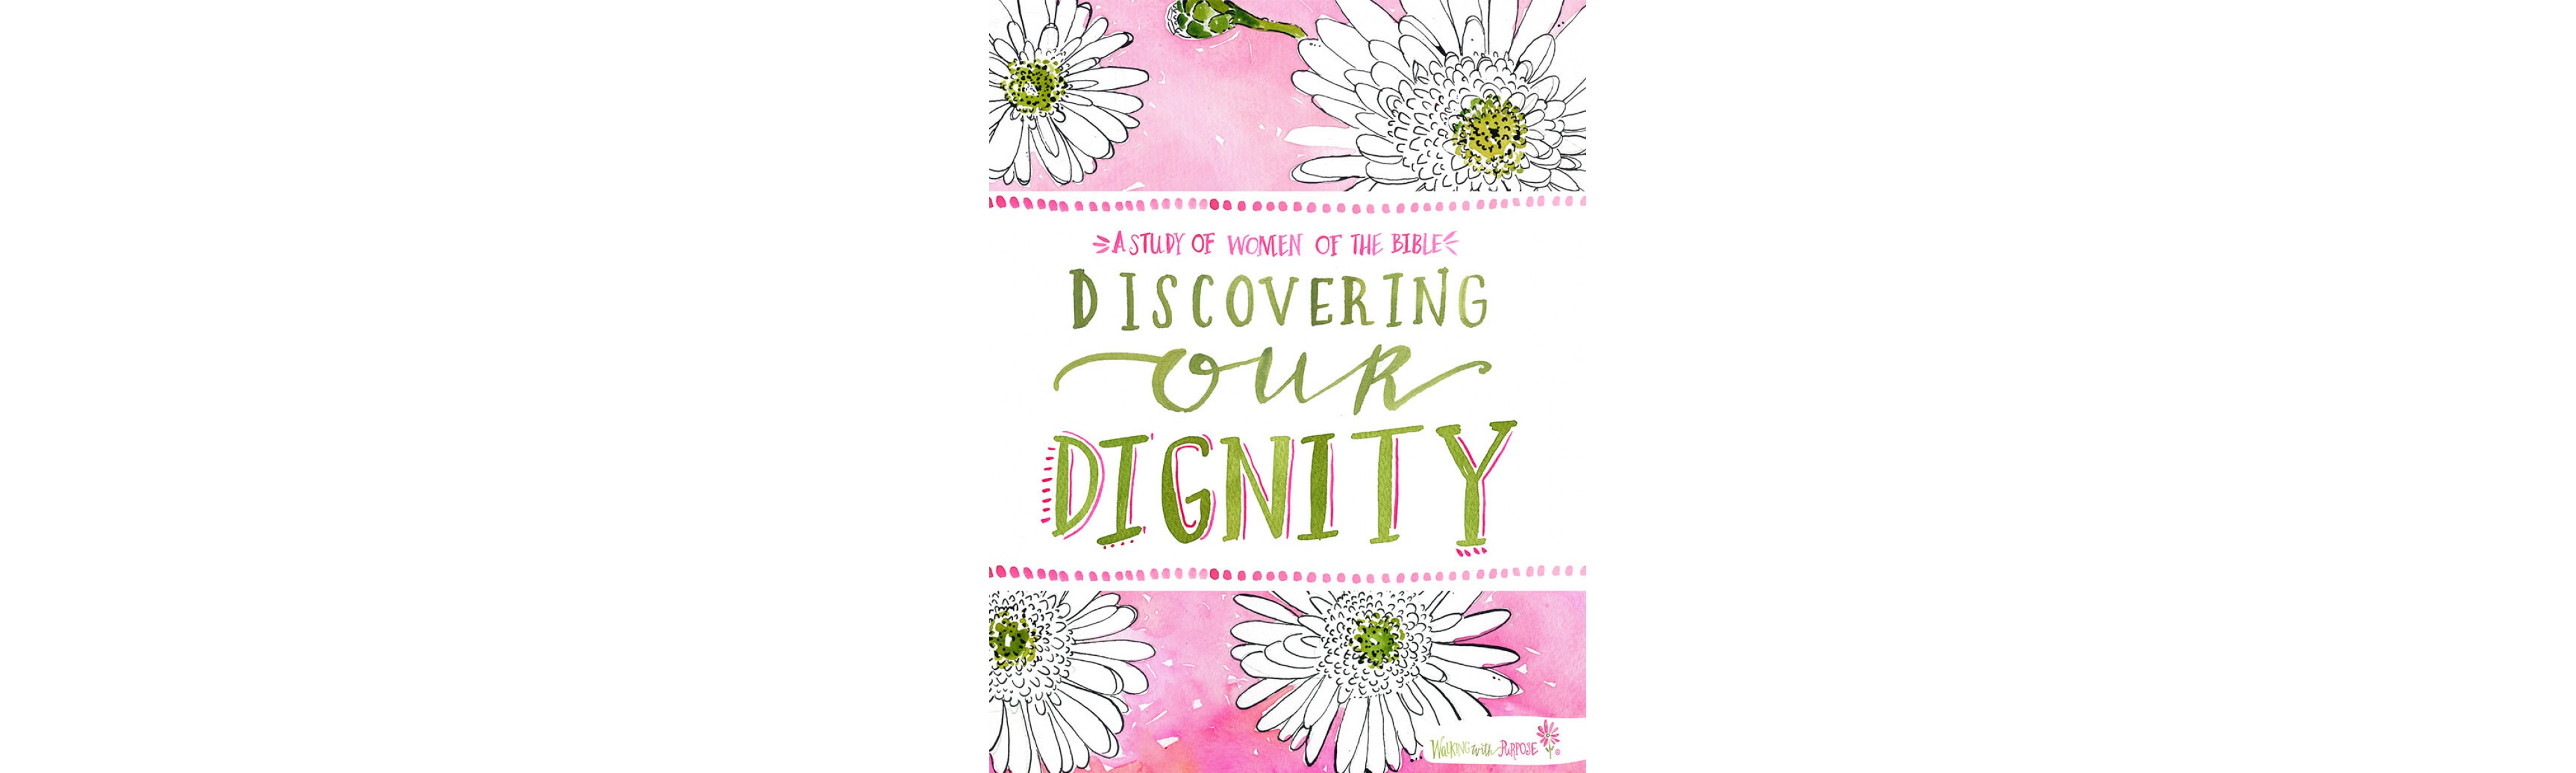 Discovering Our Dignity